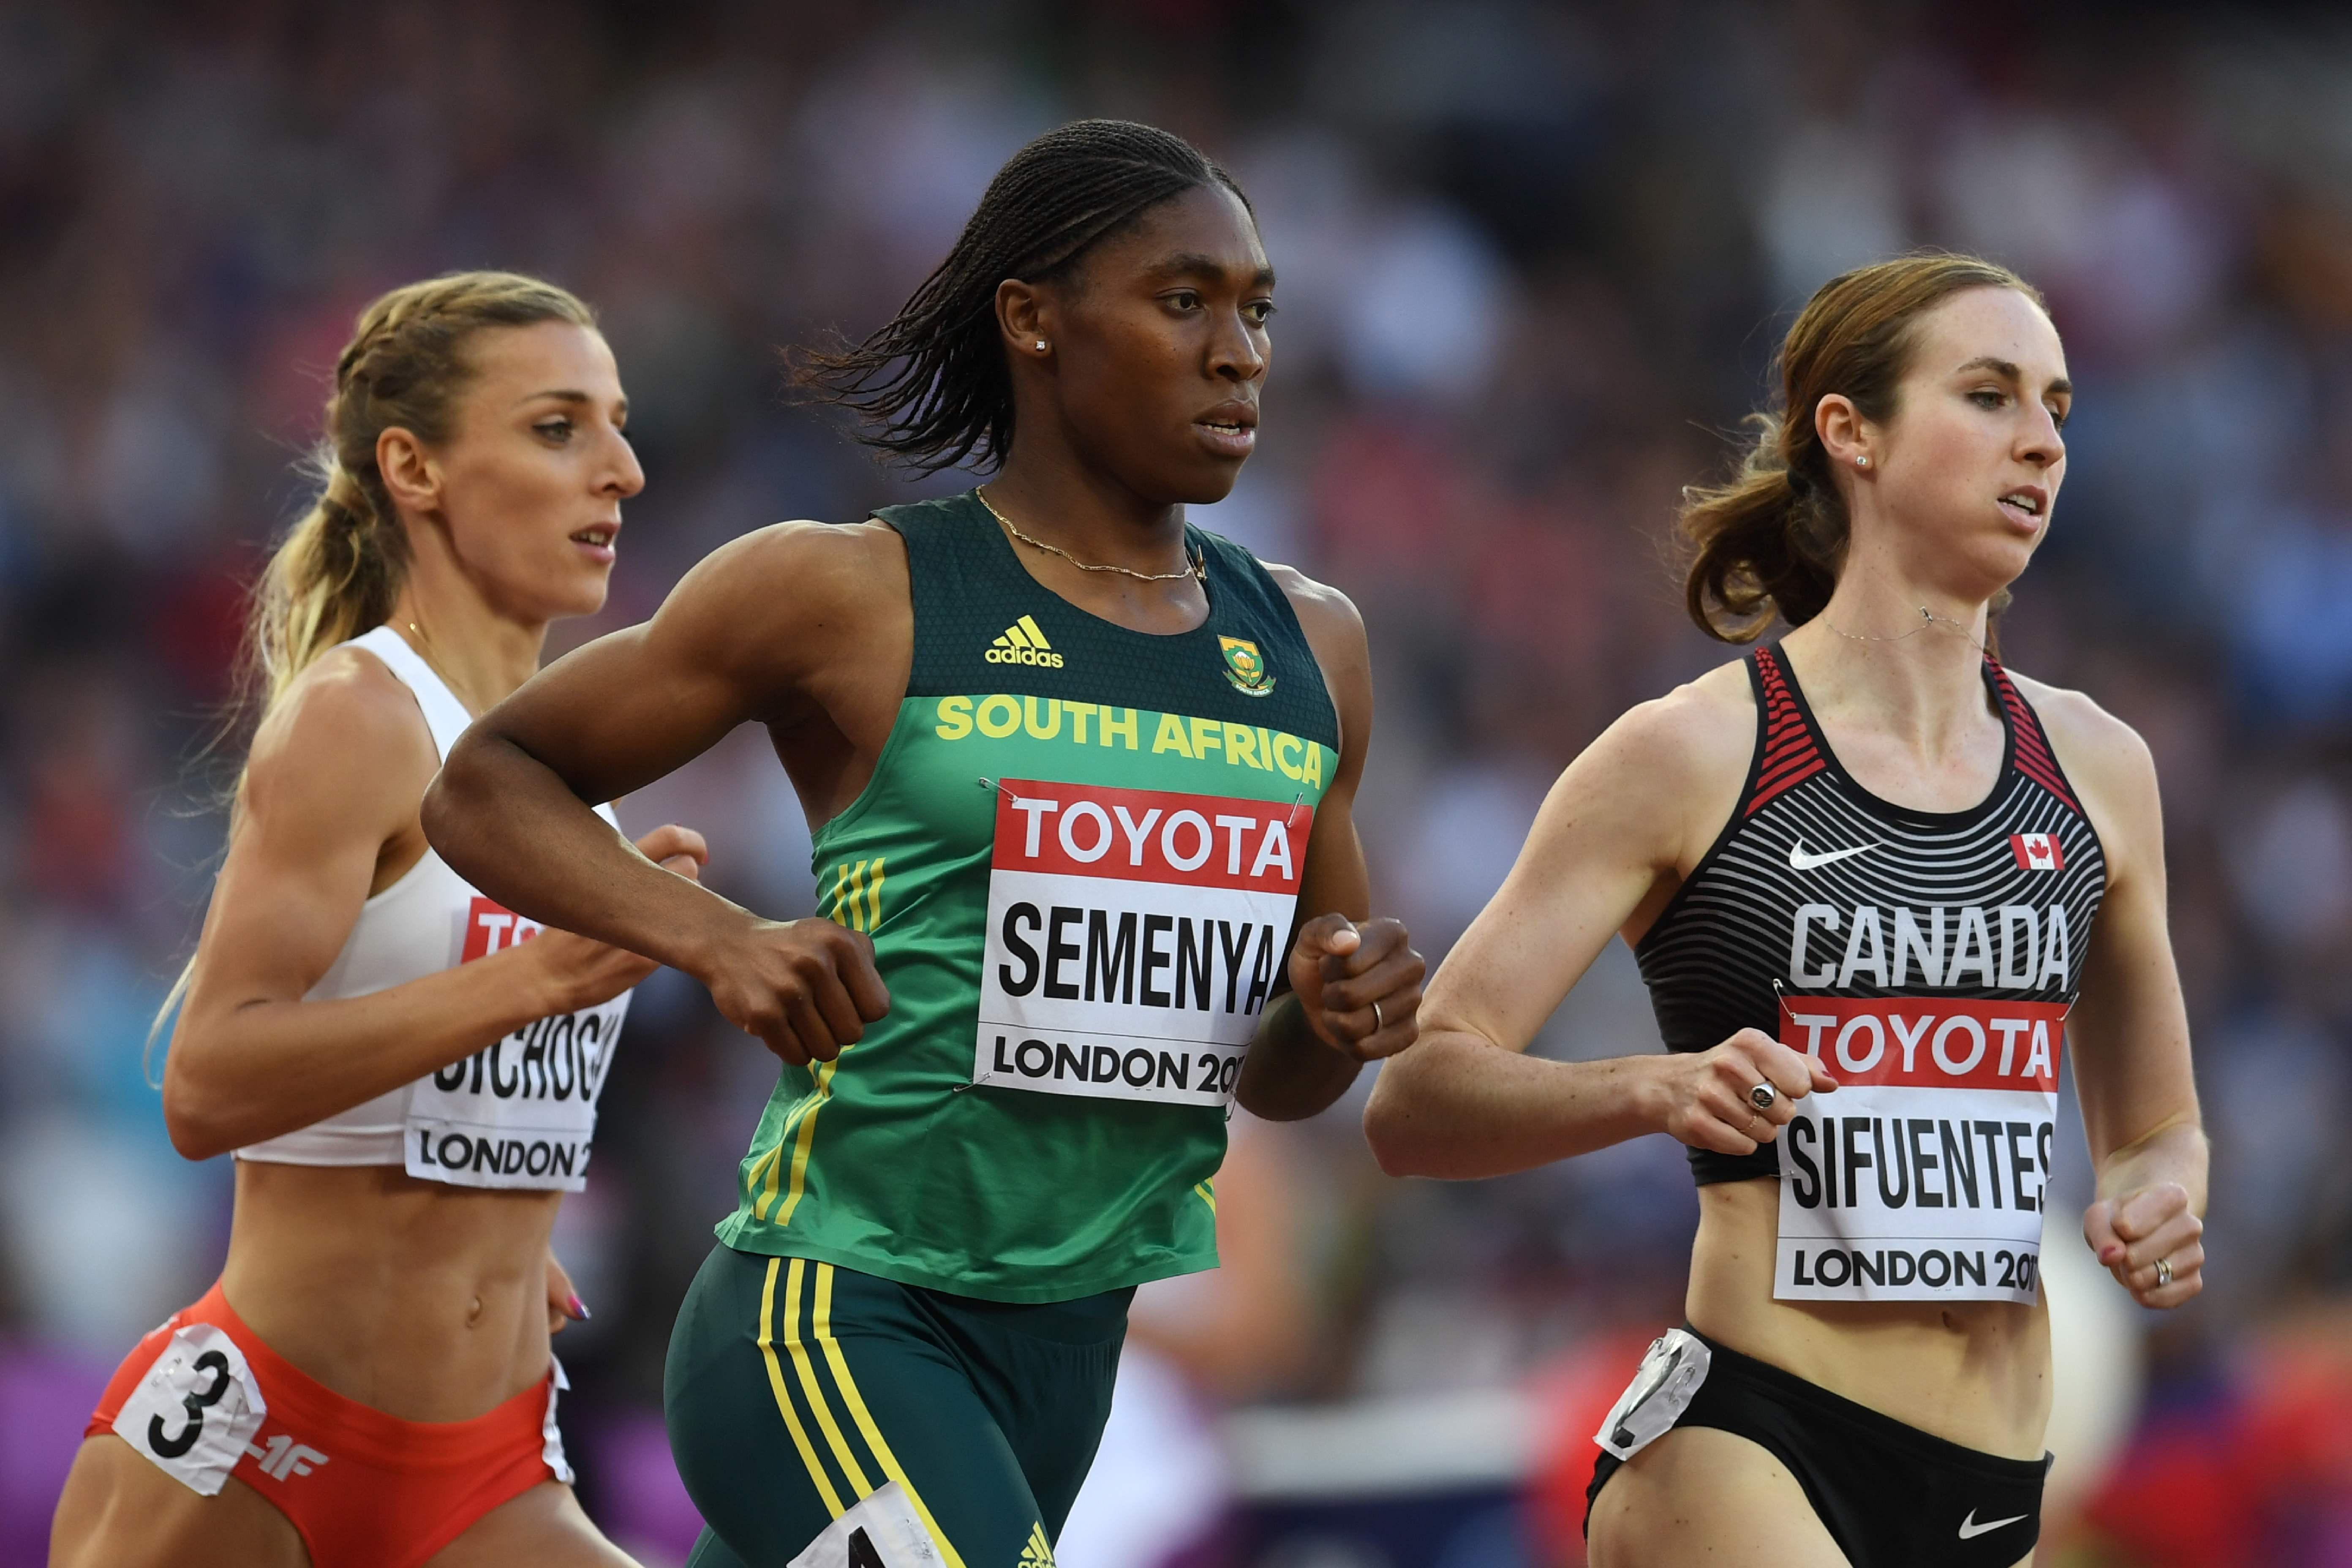 Caster Semenya in action for South Africa at the London World Championships